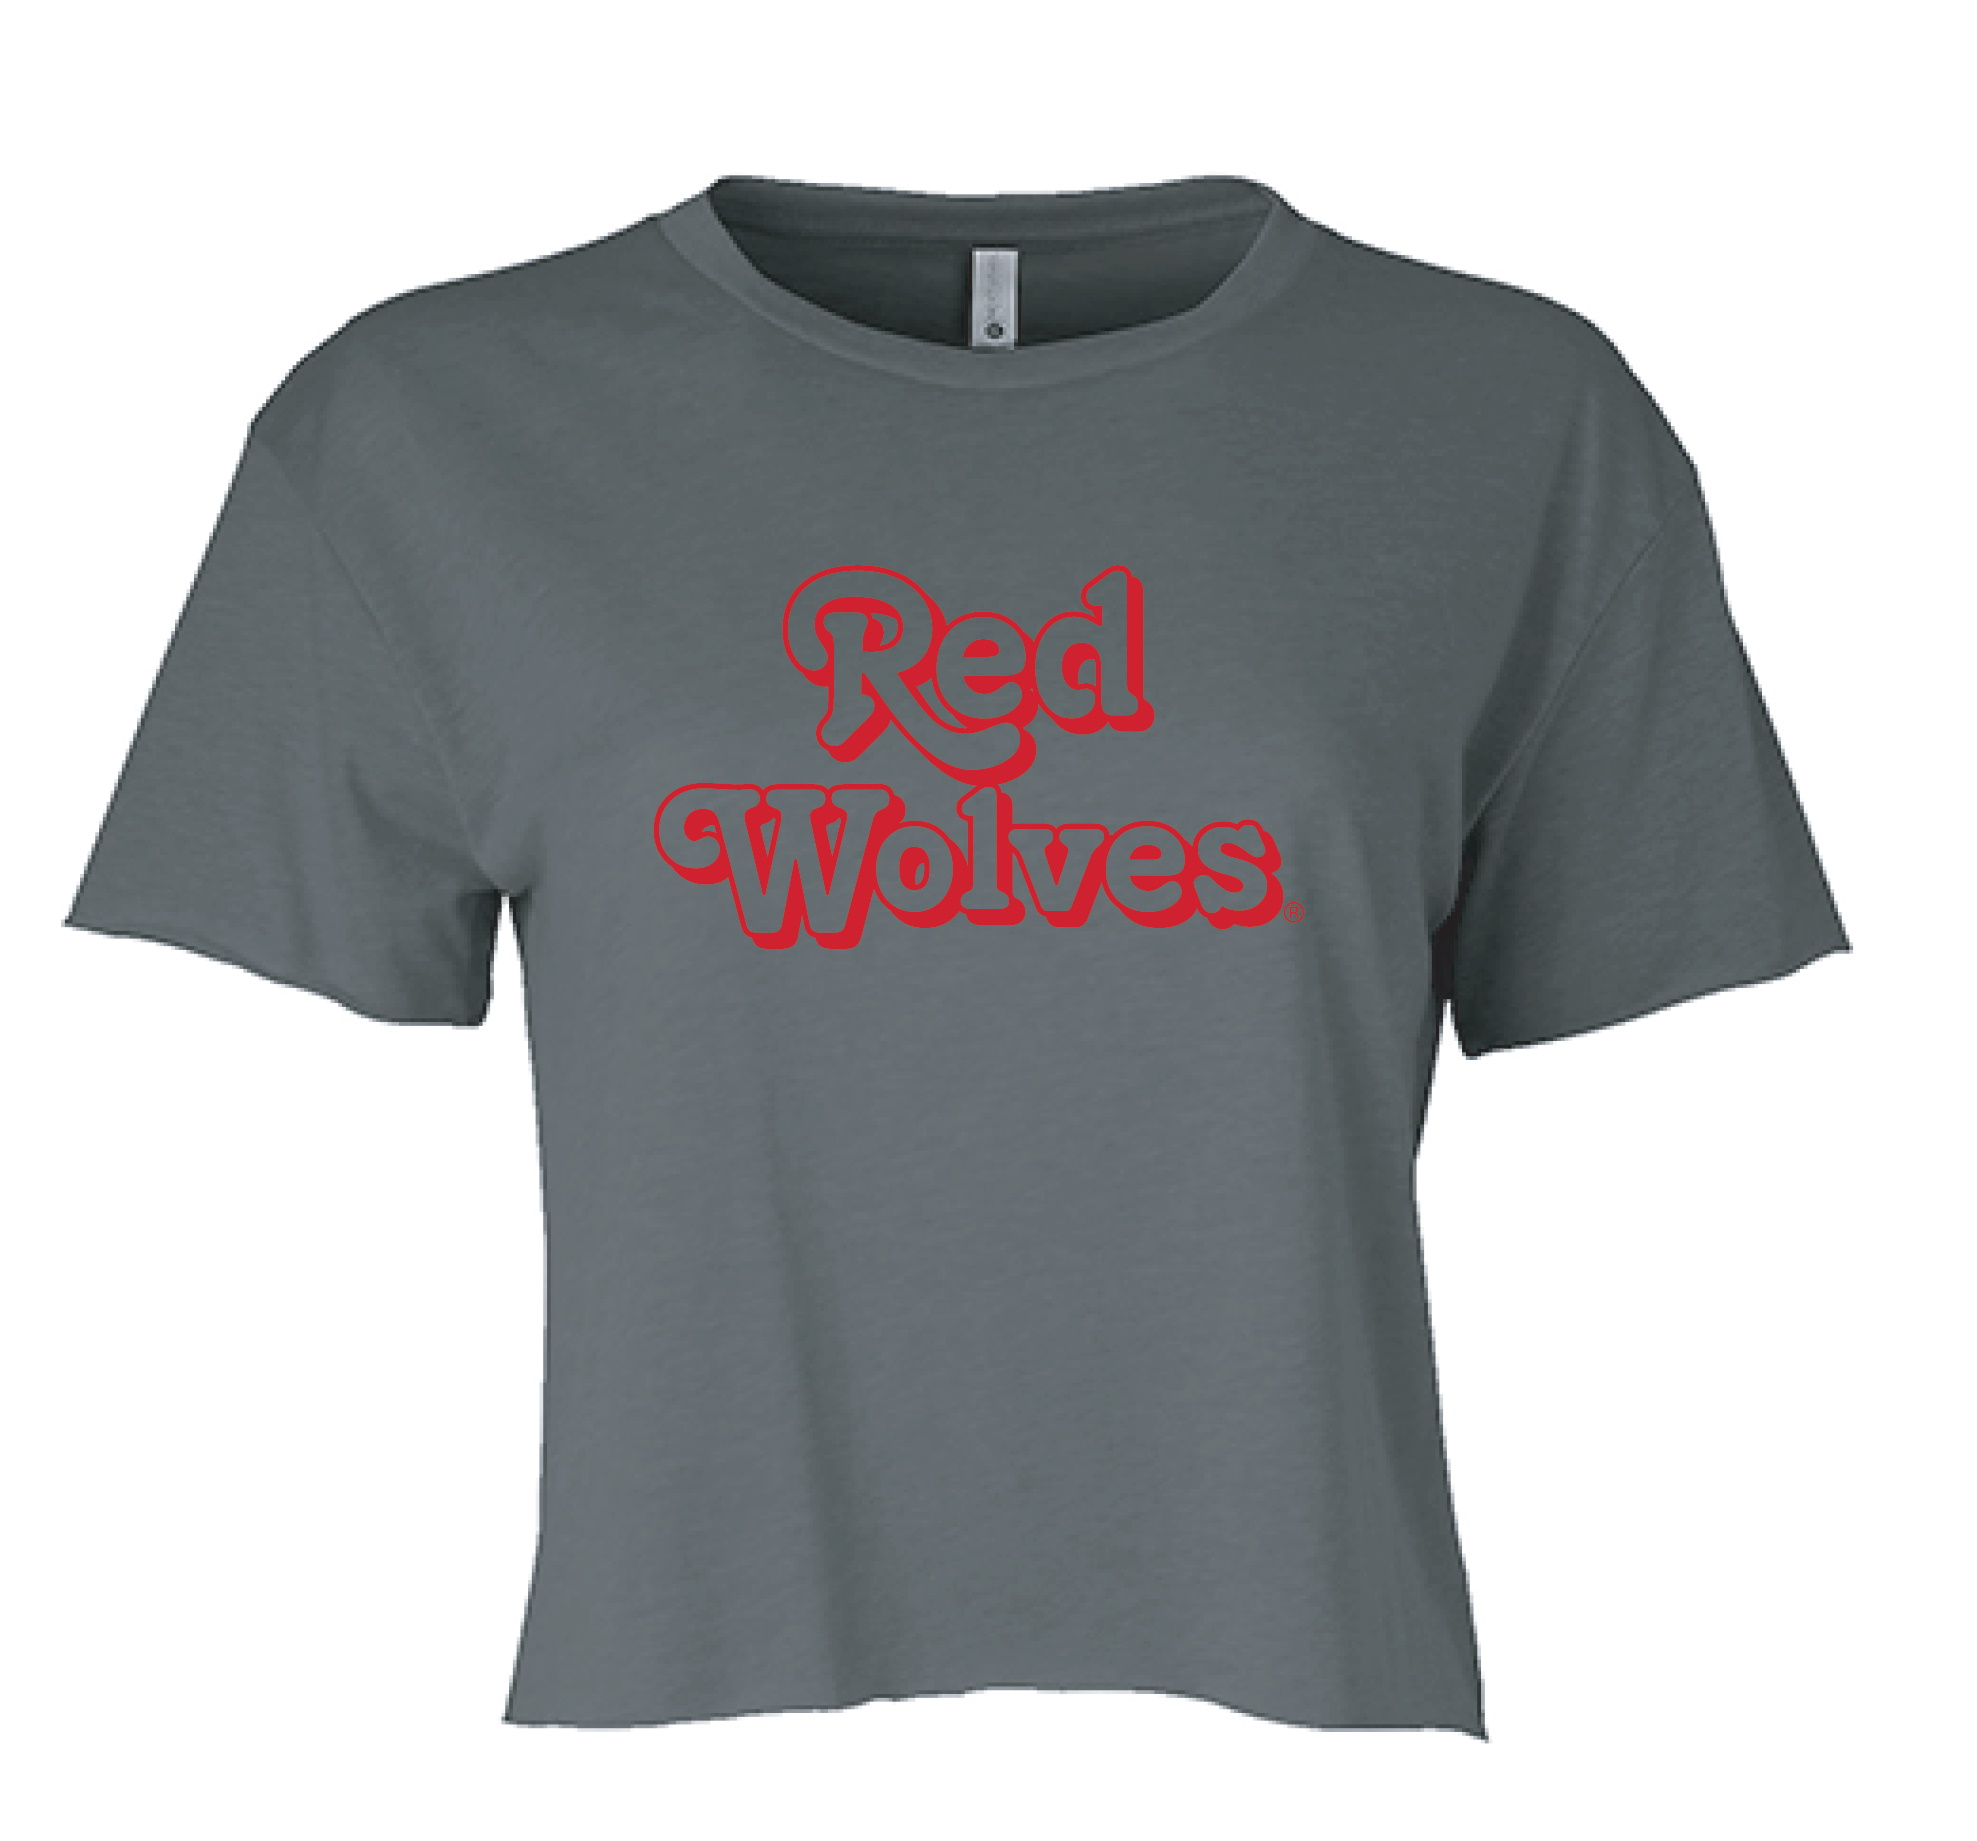 Red Wolves Cropped Lightweight Crew Neck S/S Tee